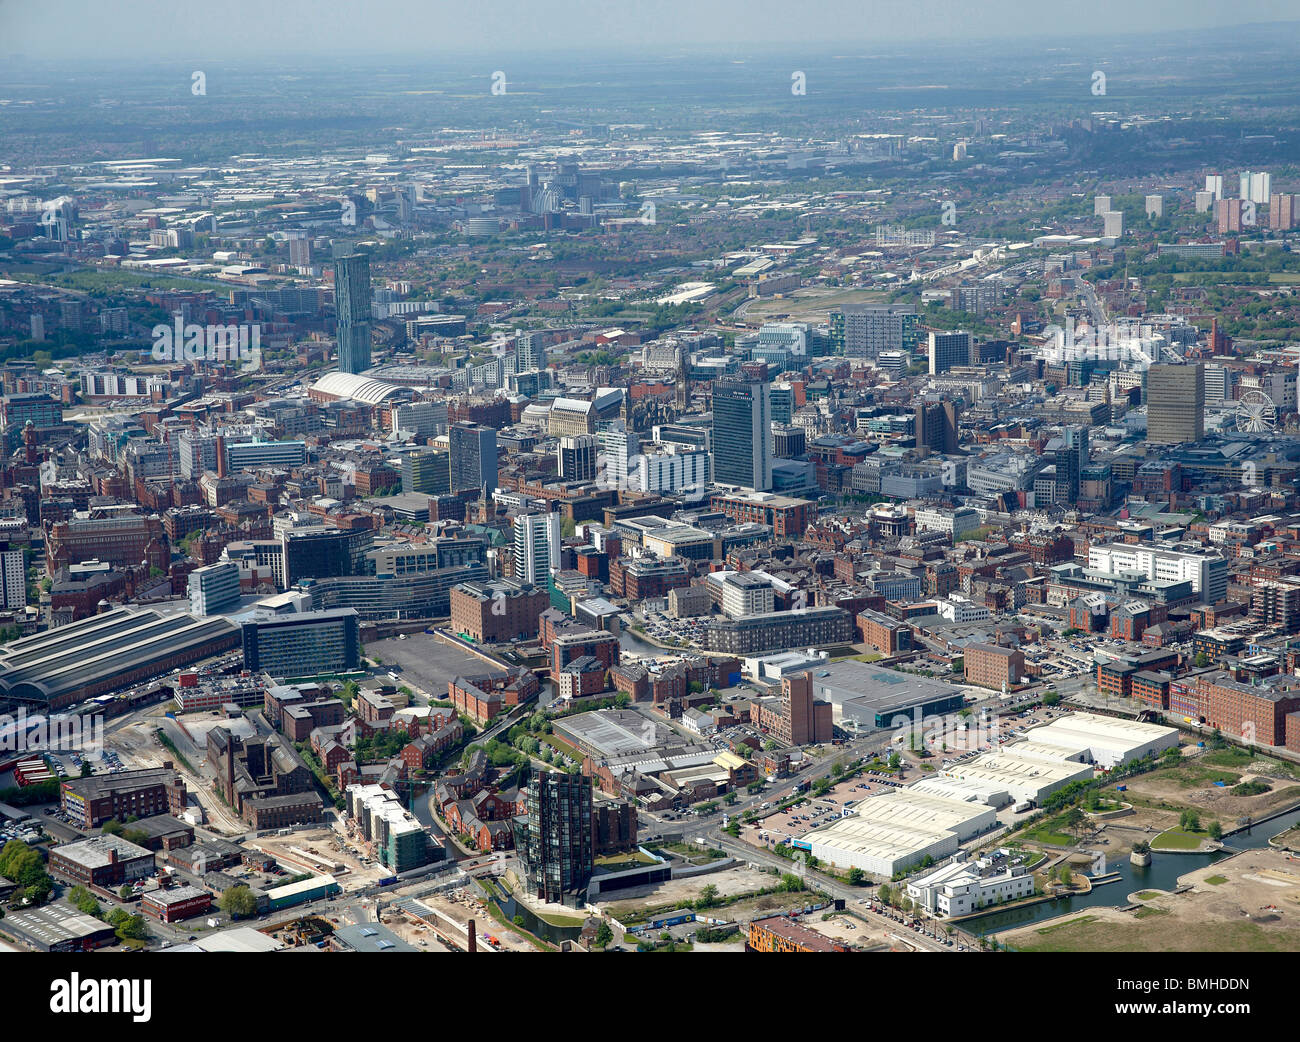 Manchester City Centre from the Air, North West England - Stock Image